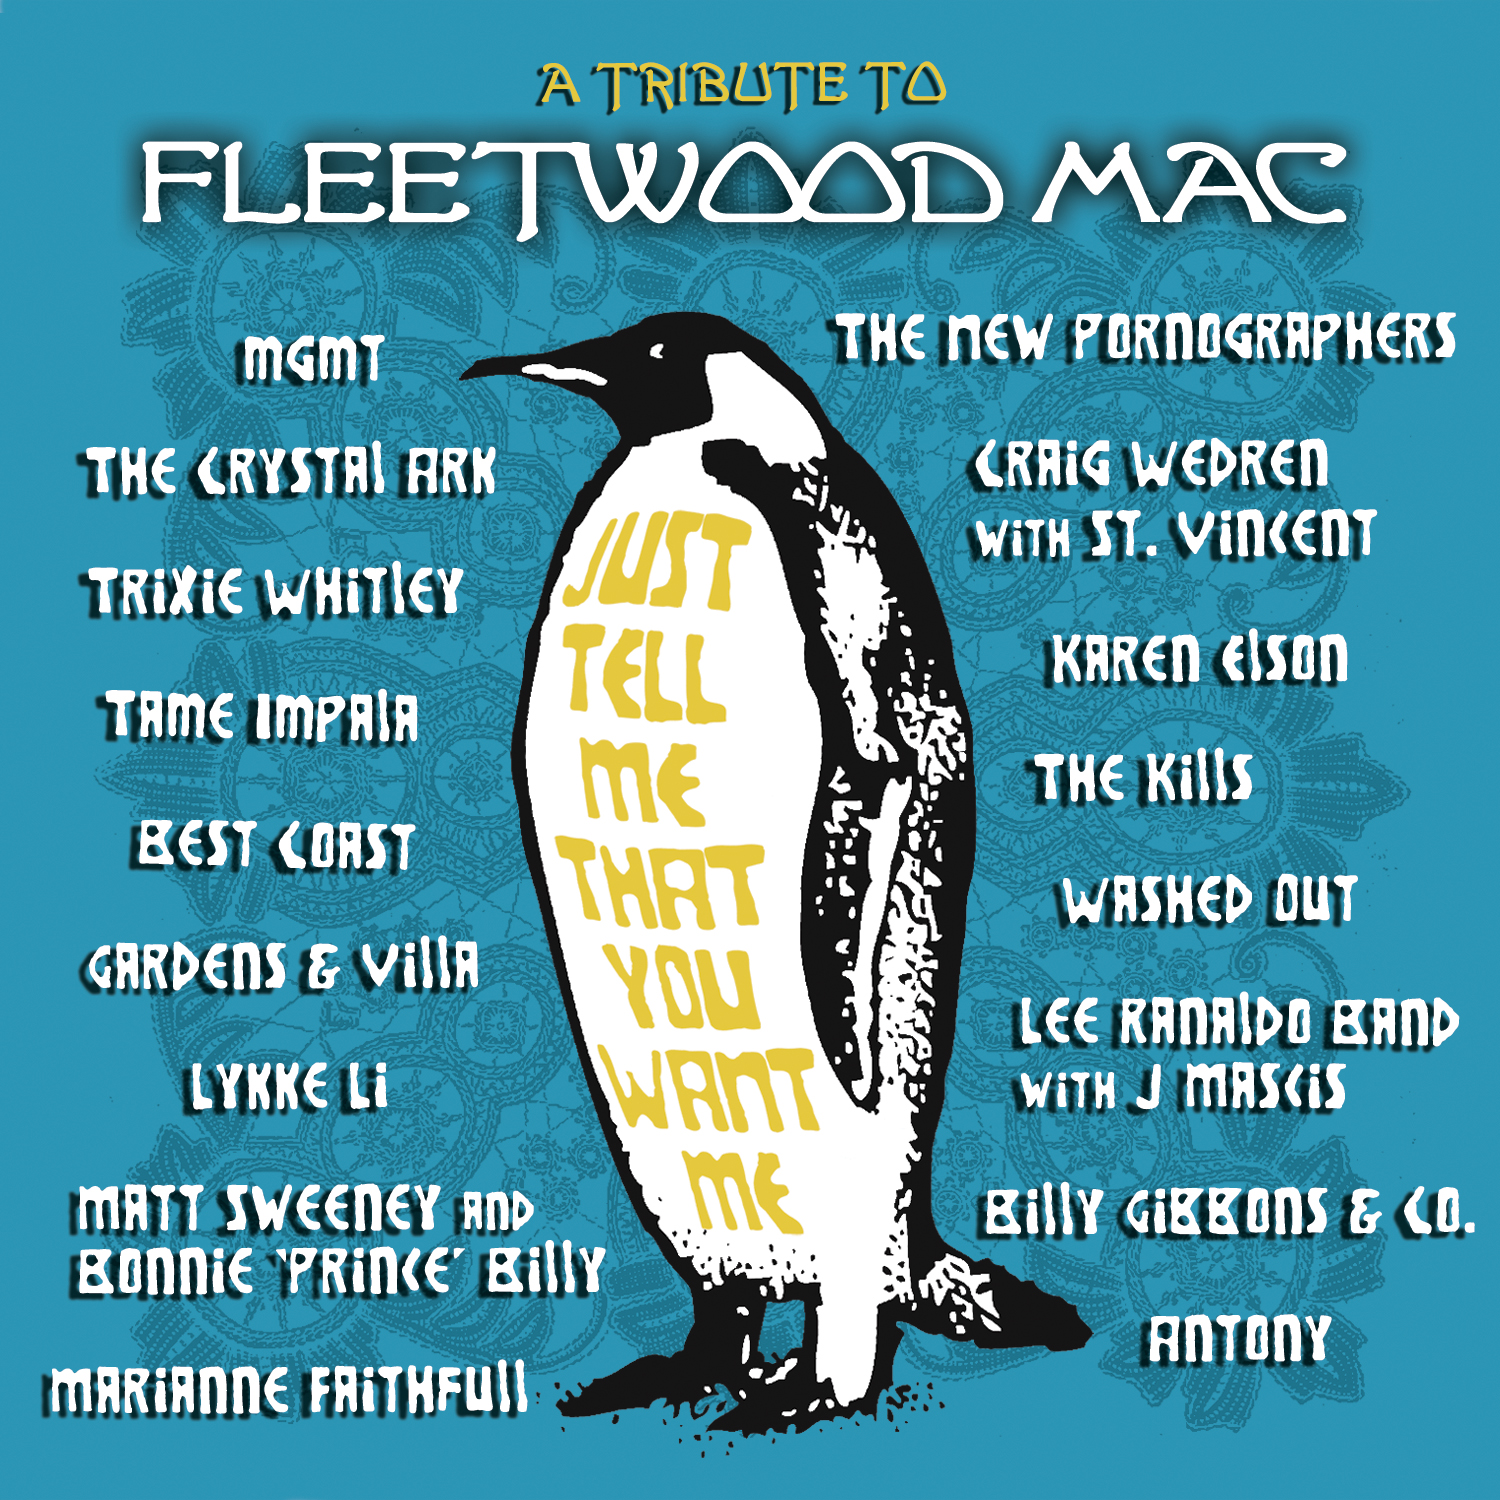 Fleetwood Mac Tribute Album to Include MGMT, Best Coast, Lykke Li